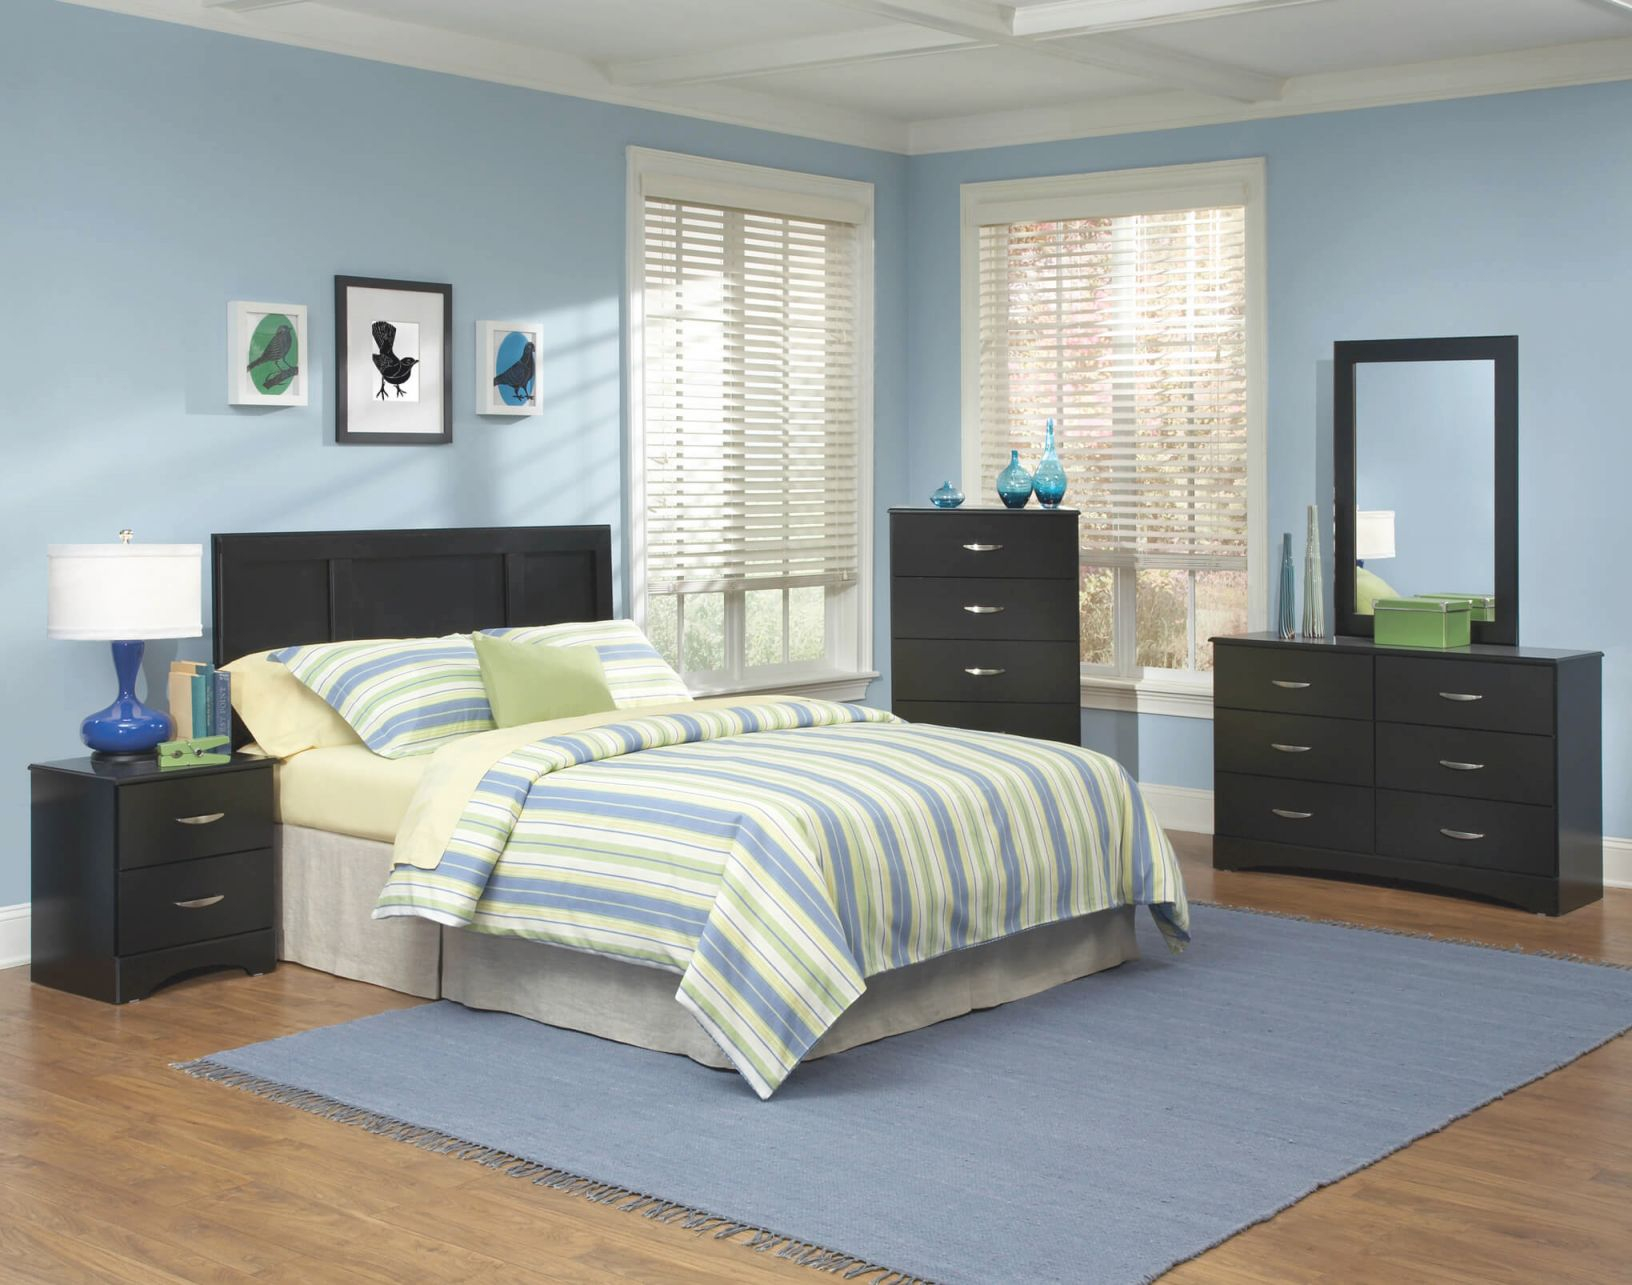 115 Kith Jacob Black Bedroom Set throughout Awesome Cheap Queen Bedroom Furniture Sets